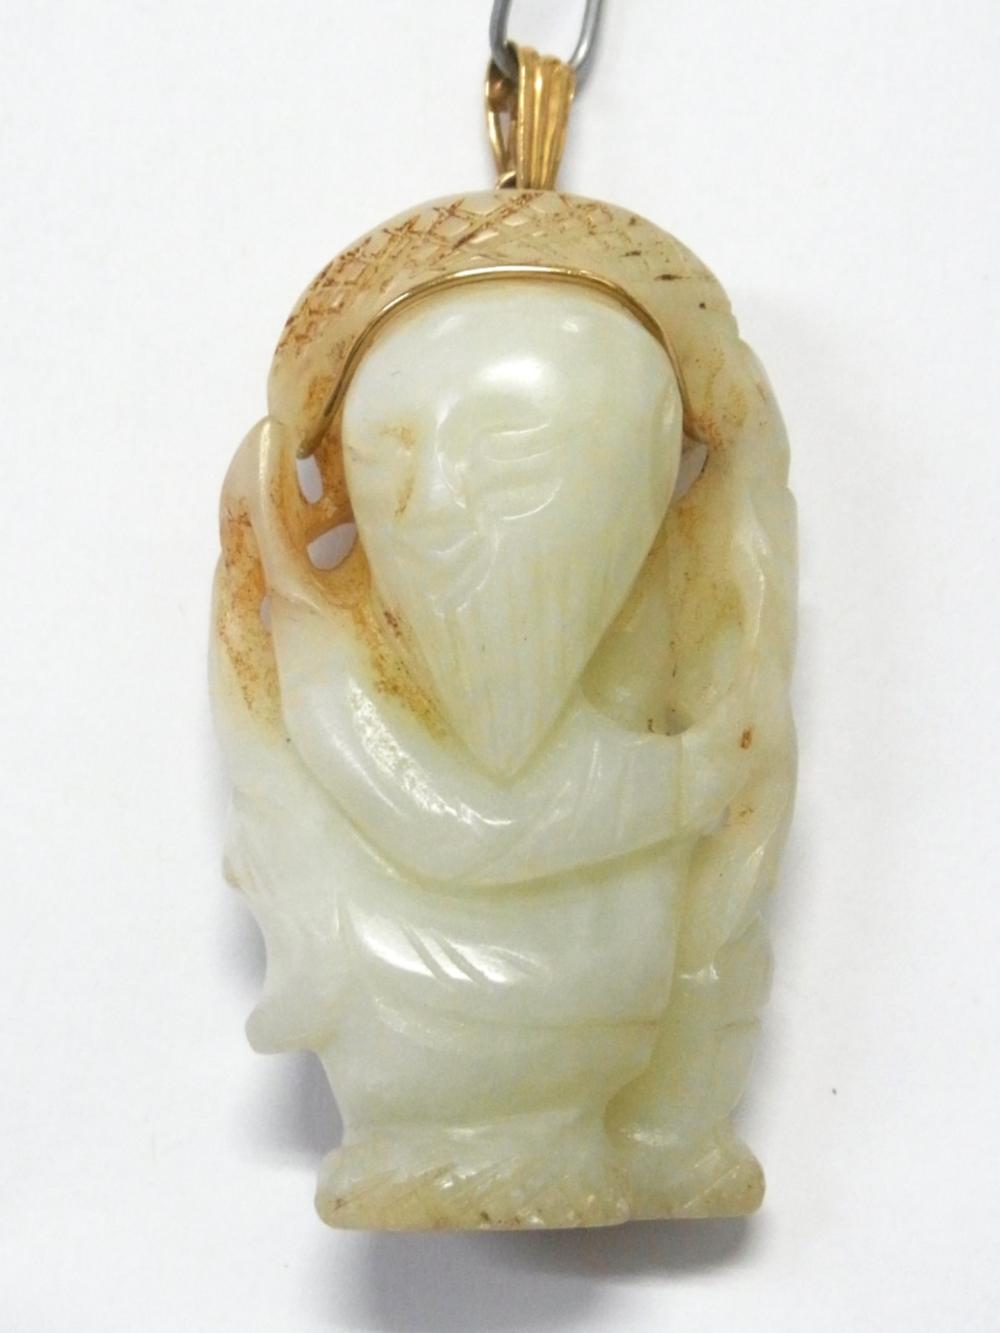 Antique 200ct Muttonfat Jadeite 18k Gold Carved Chinese Jade Buddha Wise Man Statue Pendant  w/ Asian Provenance